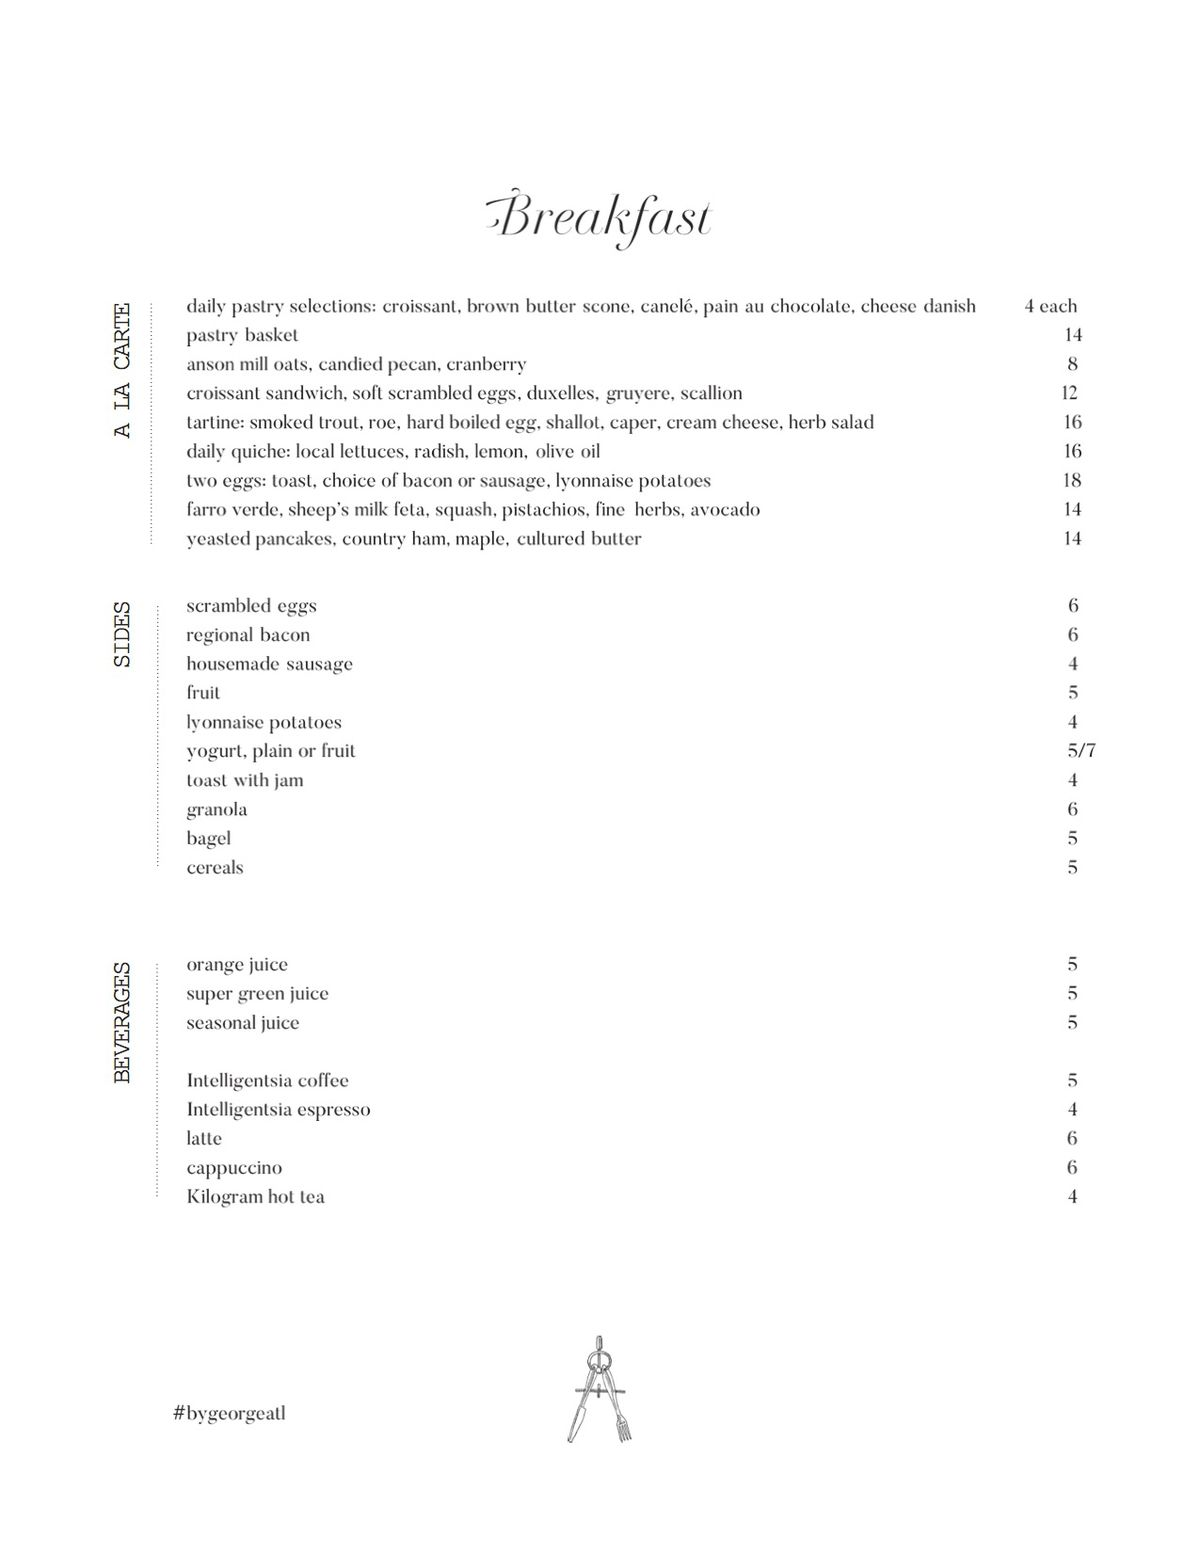 Breakfast menu for By George at the Candler Hotel in Atlanta